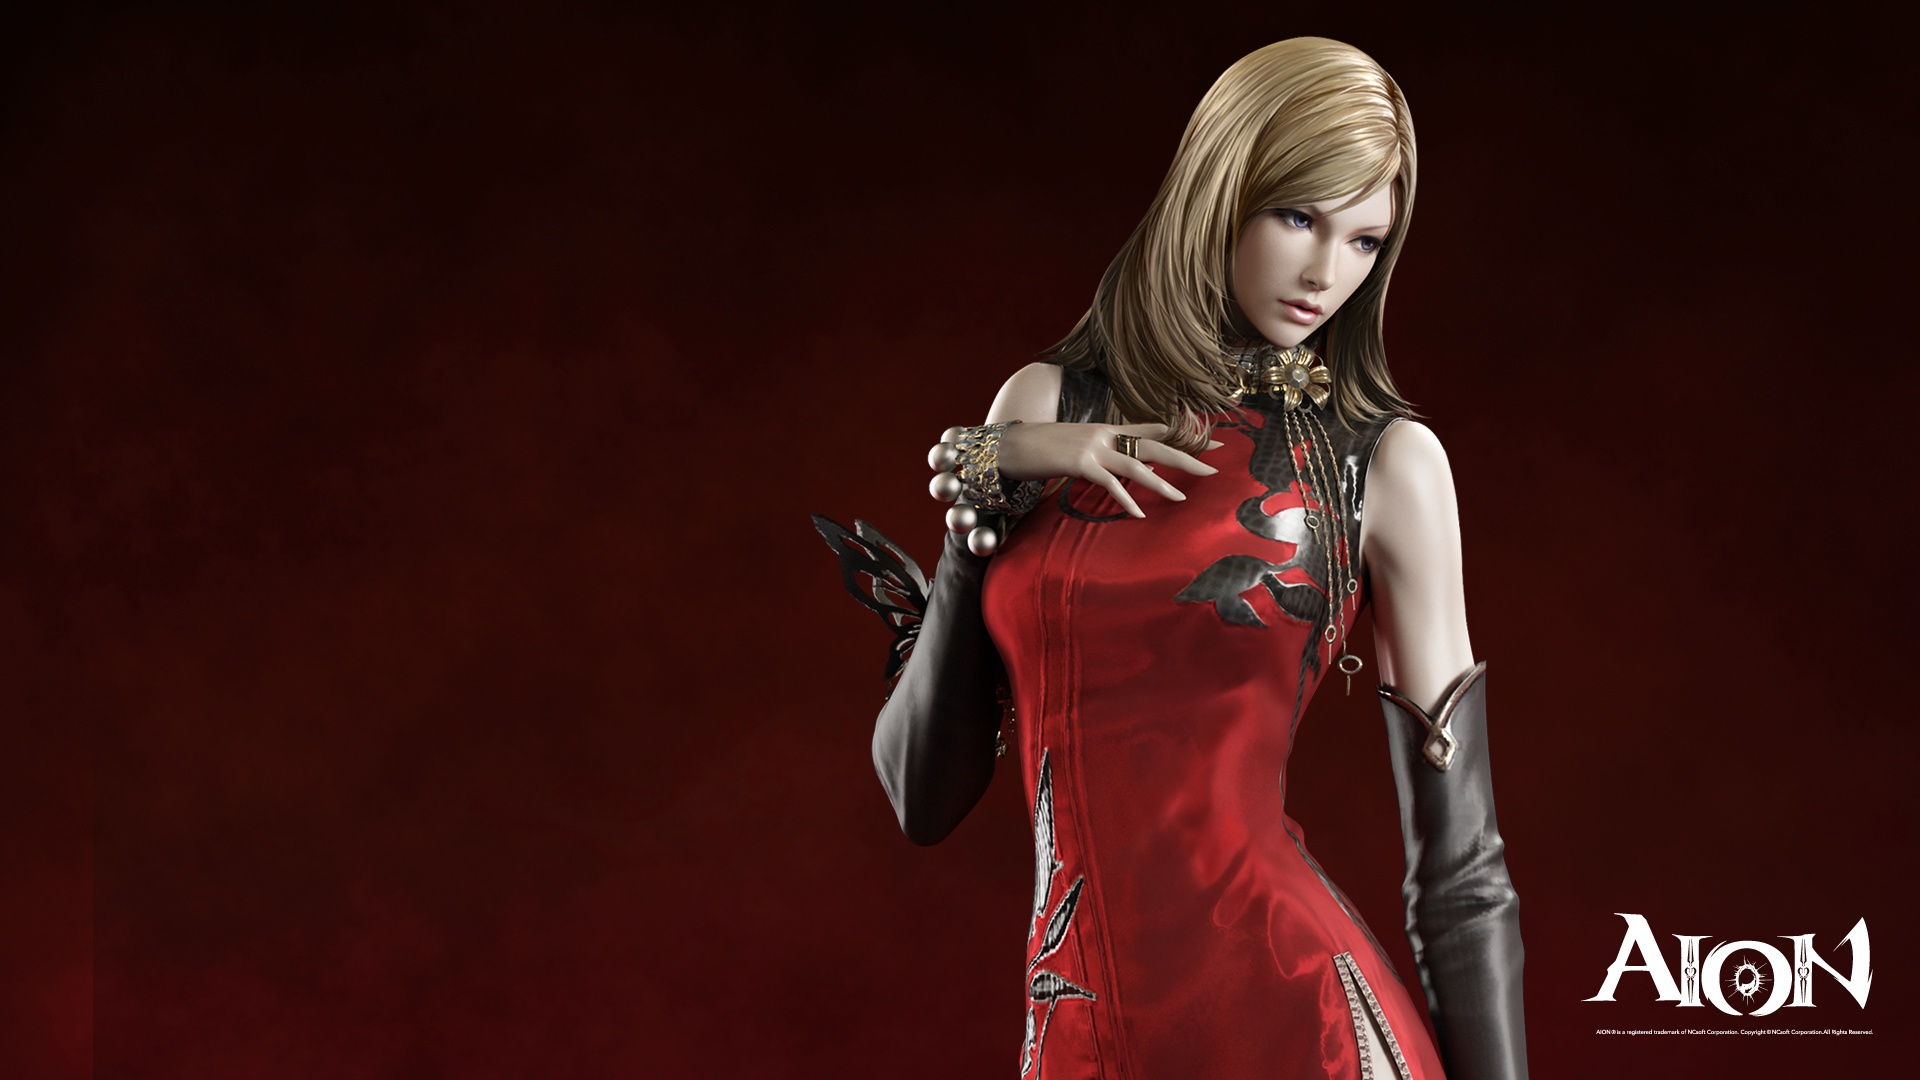 aion beautiful girl wallpapers in jpg format for free download